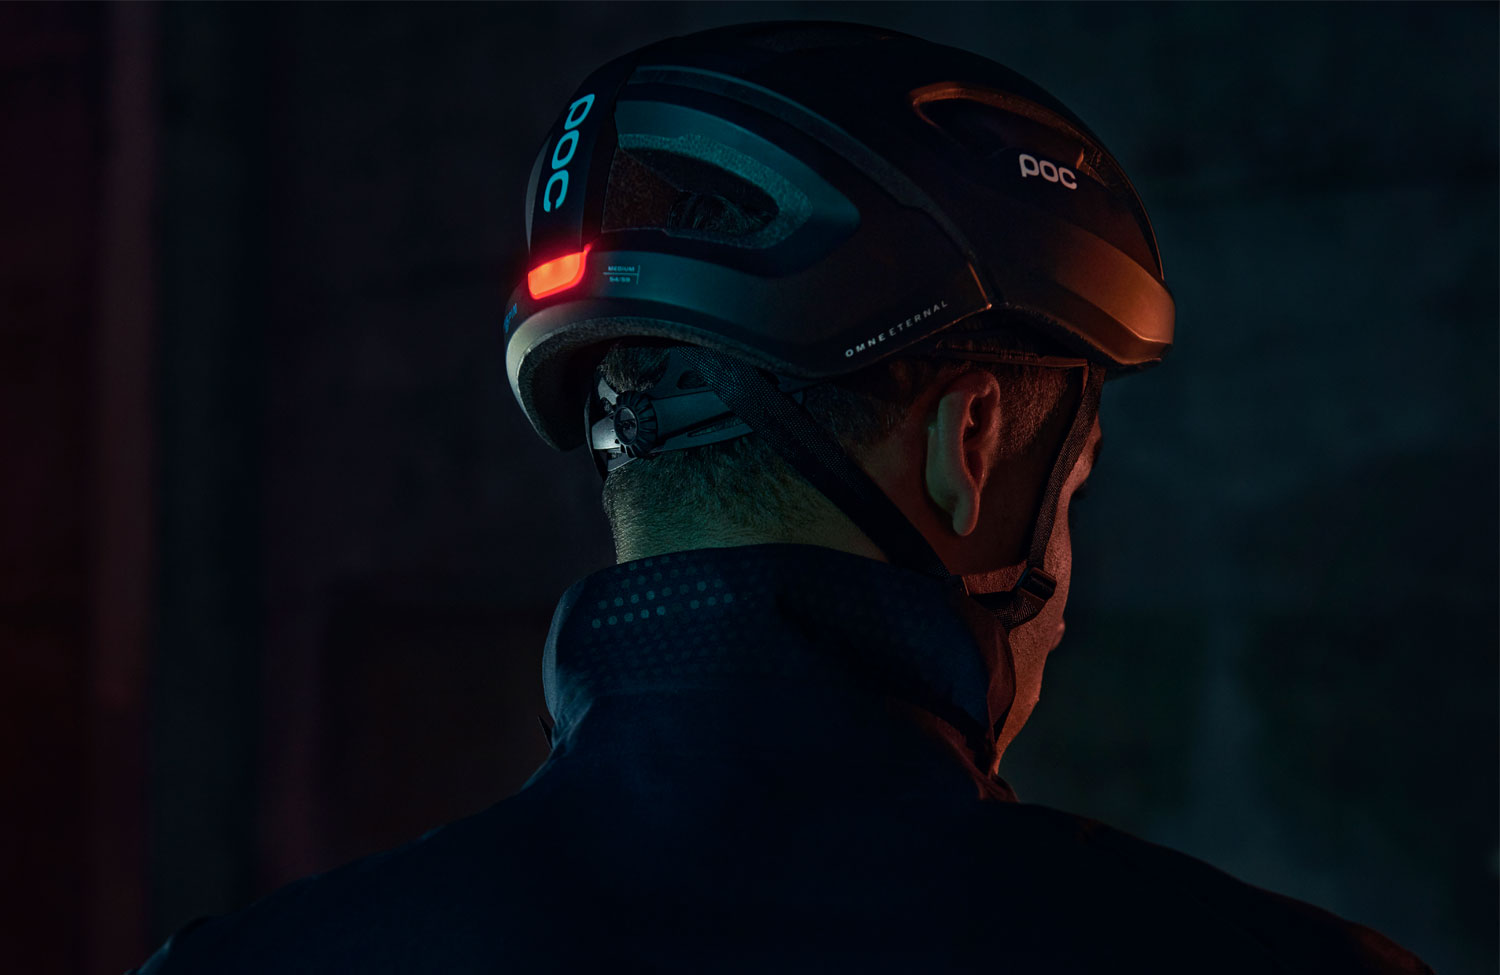 World's first cycling helmet with rear light and endless energy — completely without battery